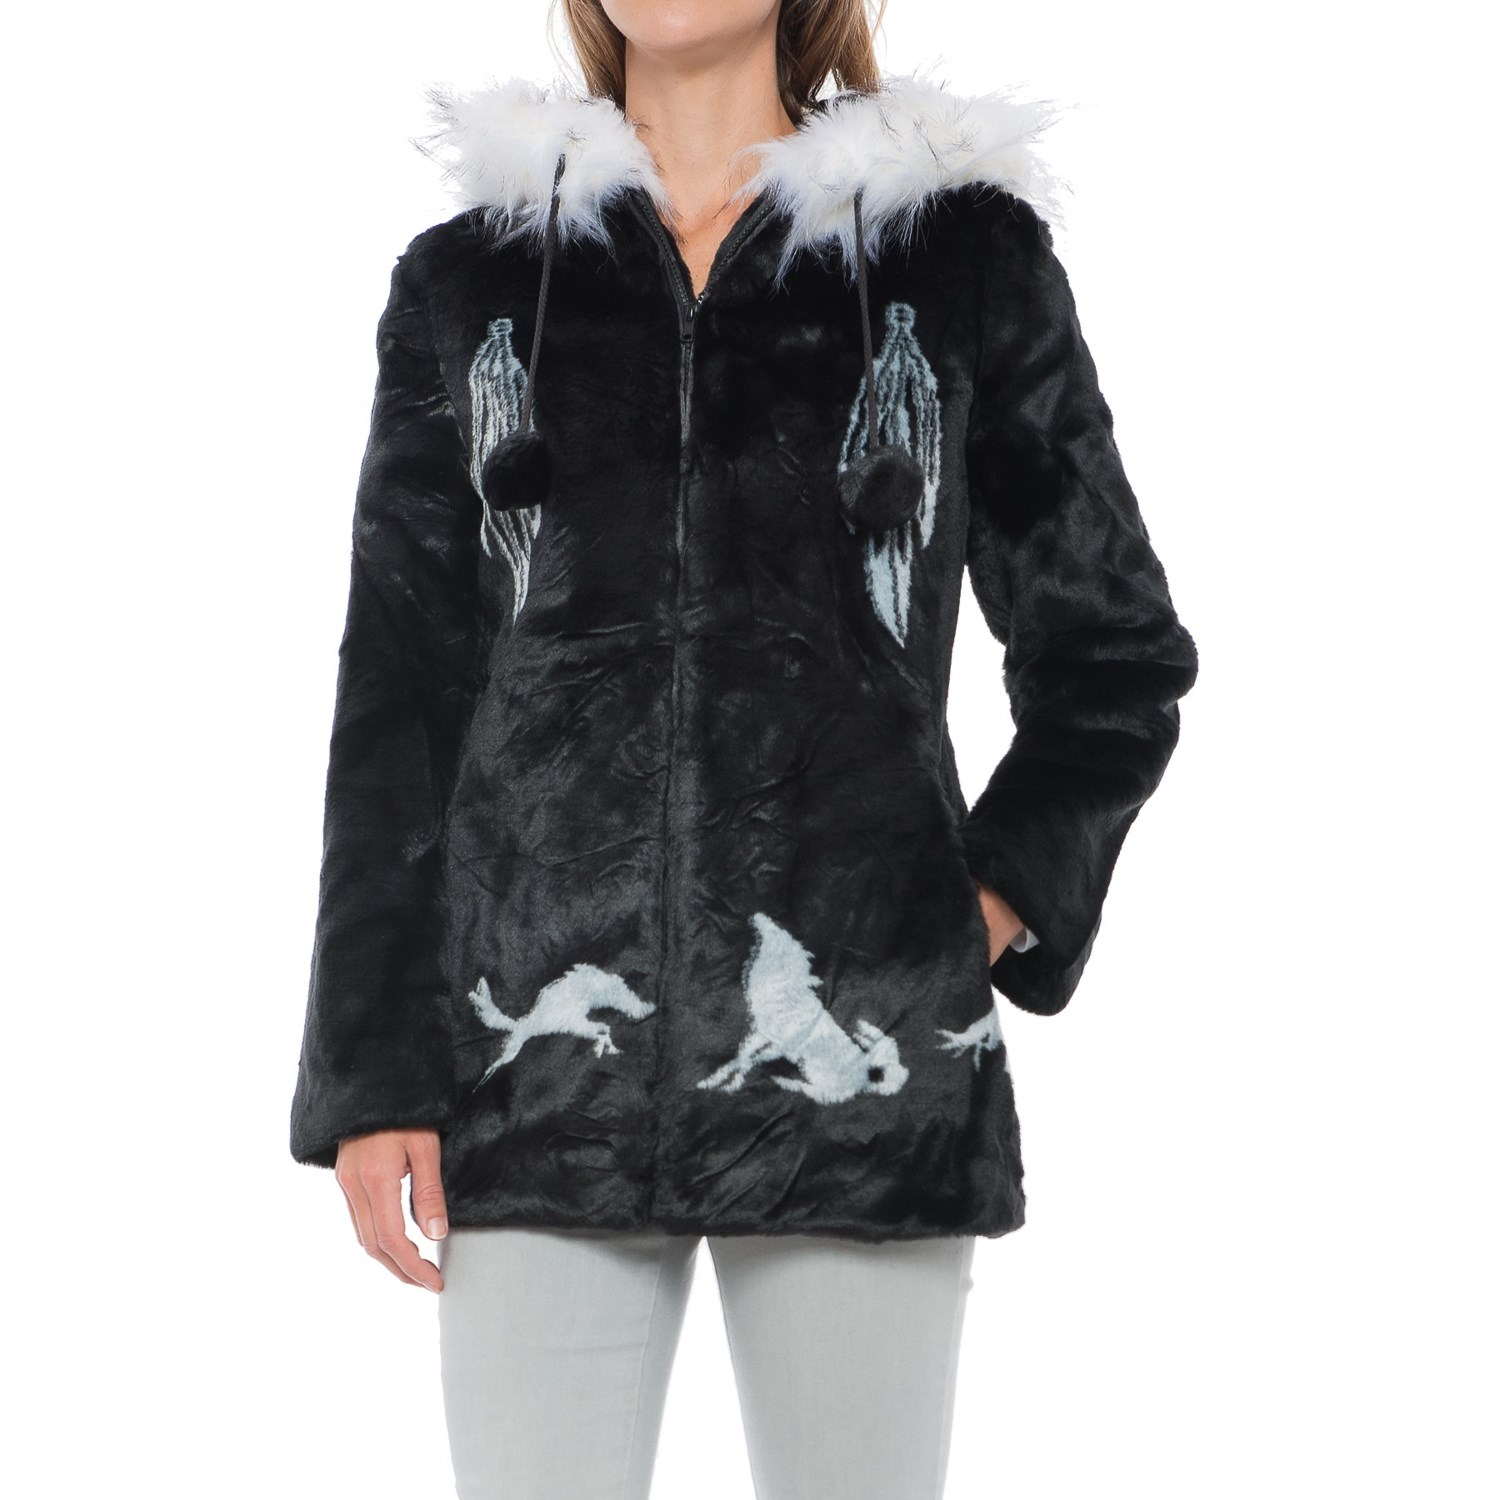 Black Mountain Faux-Fur Hooded Jacket (For Women) - Save 59%